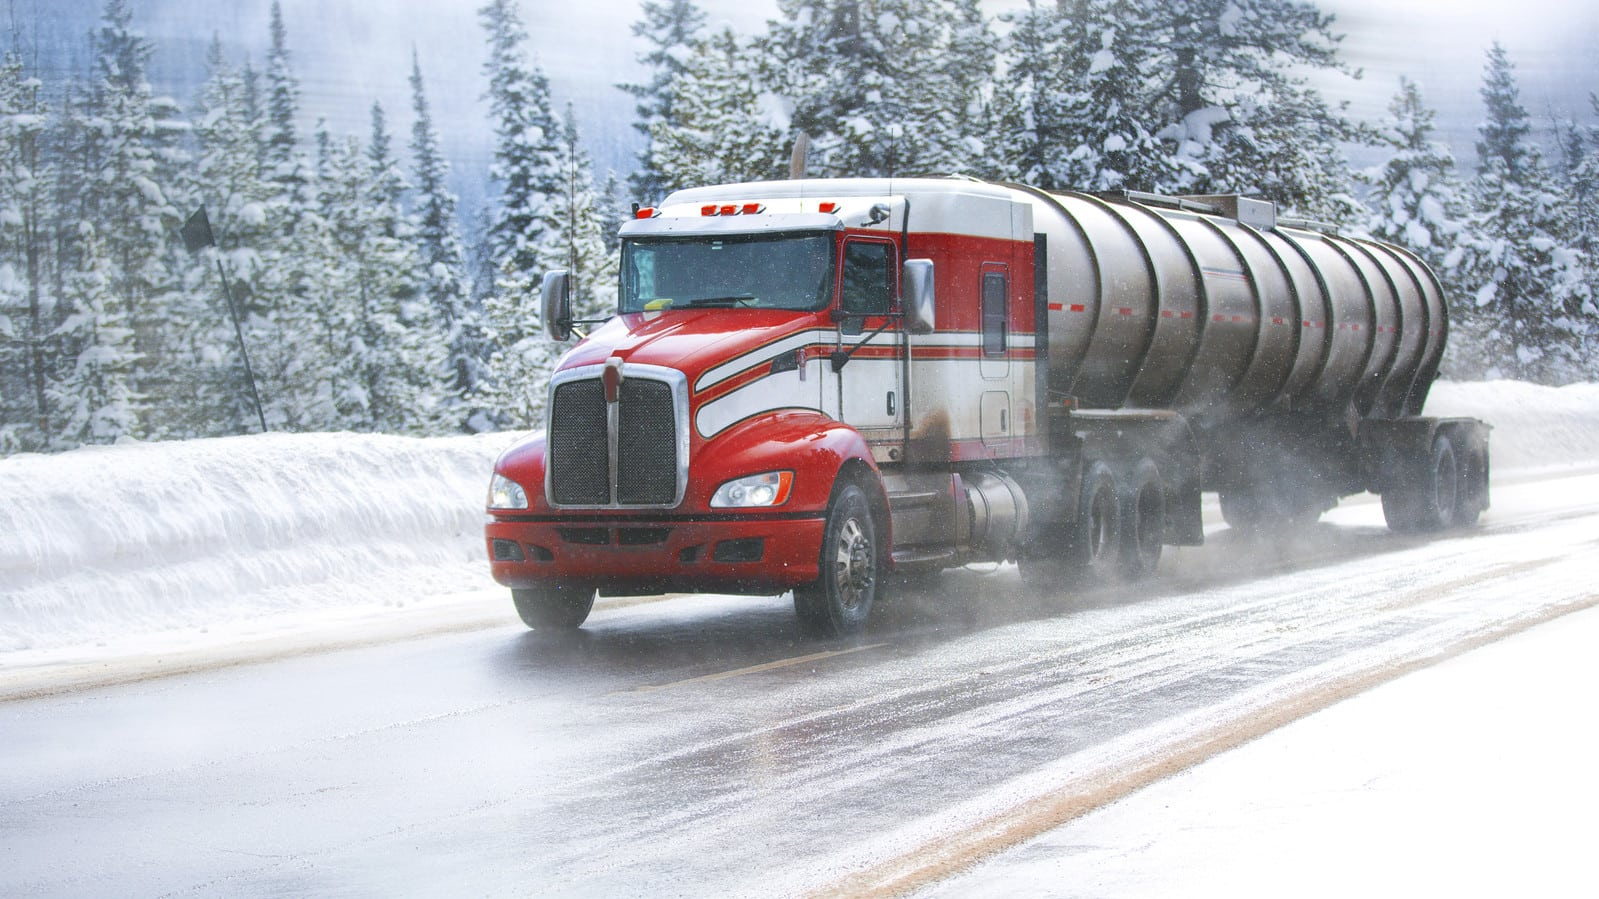 18-wheeler Truck Driving In The Snow